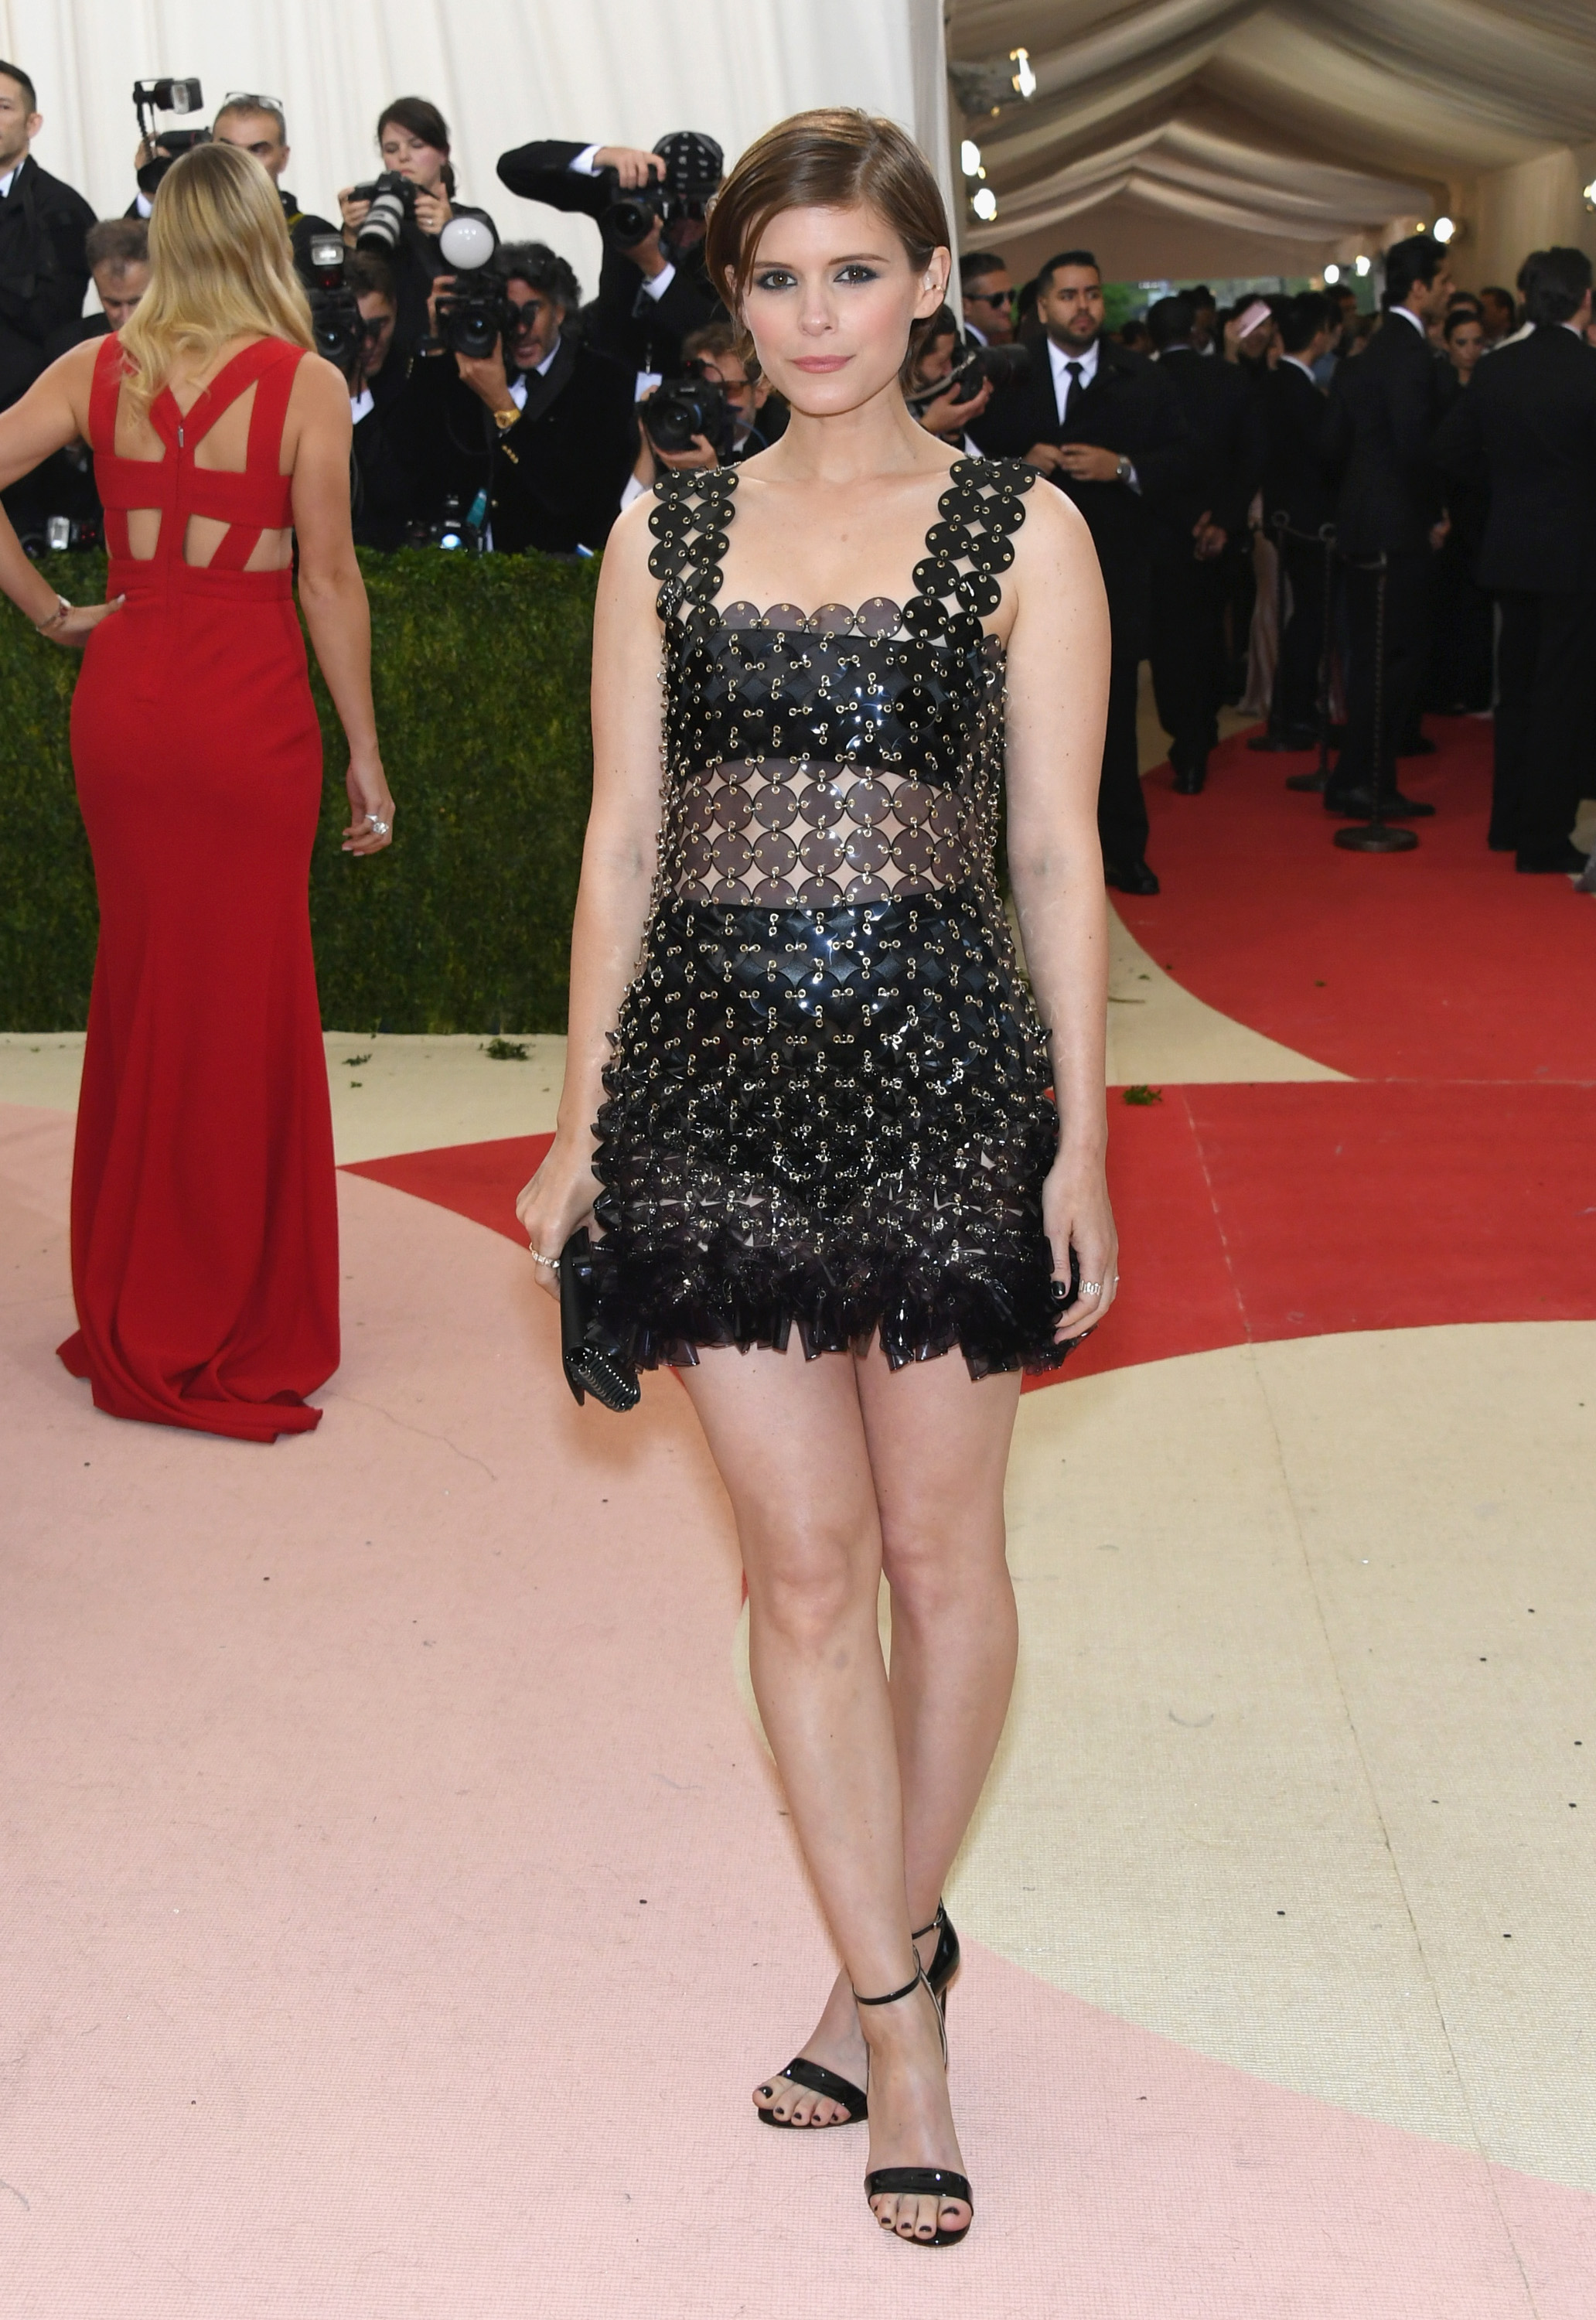 Kate Mara attends  Manus x Machina: Fashion In An Age Of Technology  Costume Institute Gala at Metropolitan Museum of Art on May 2, 2016 in New York City.